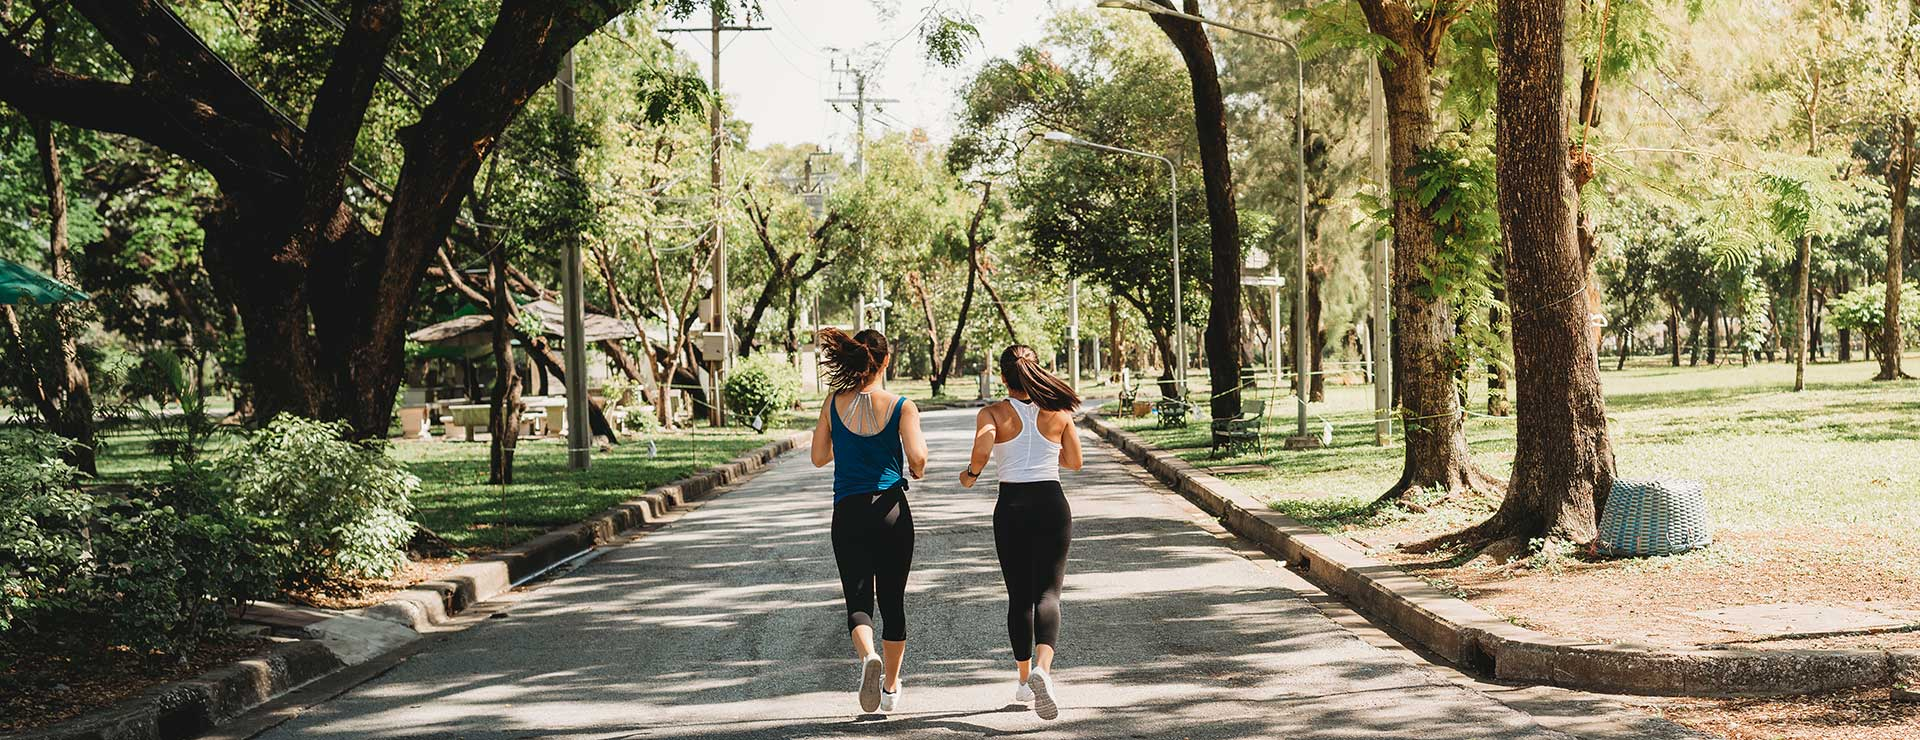 Two women jog together through a park.